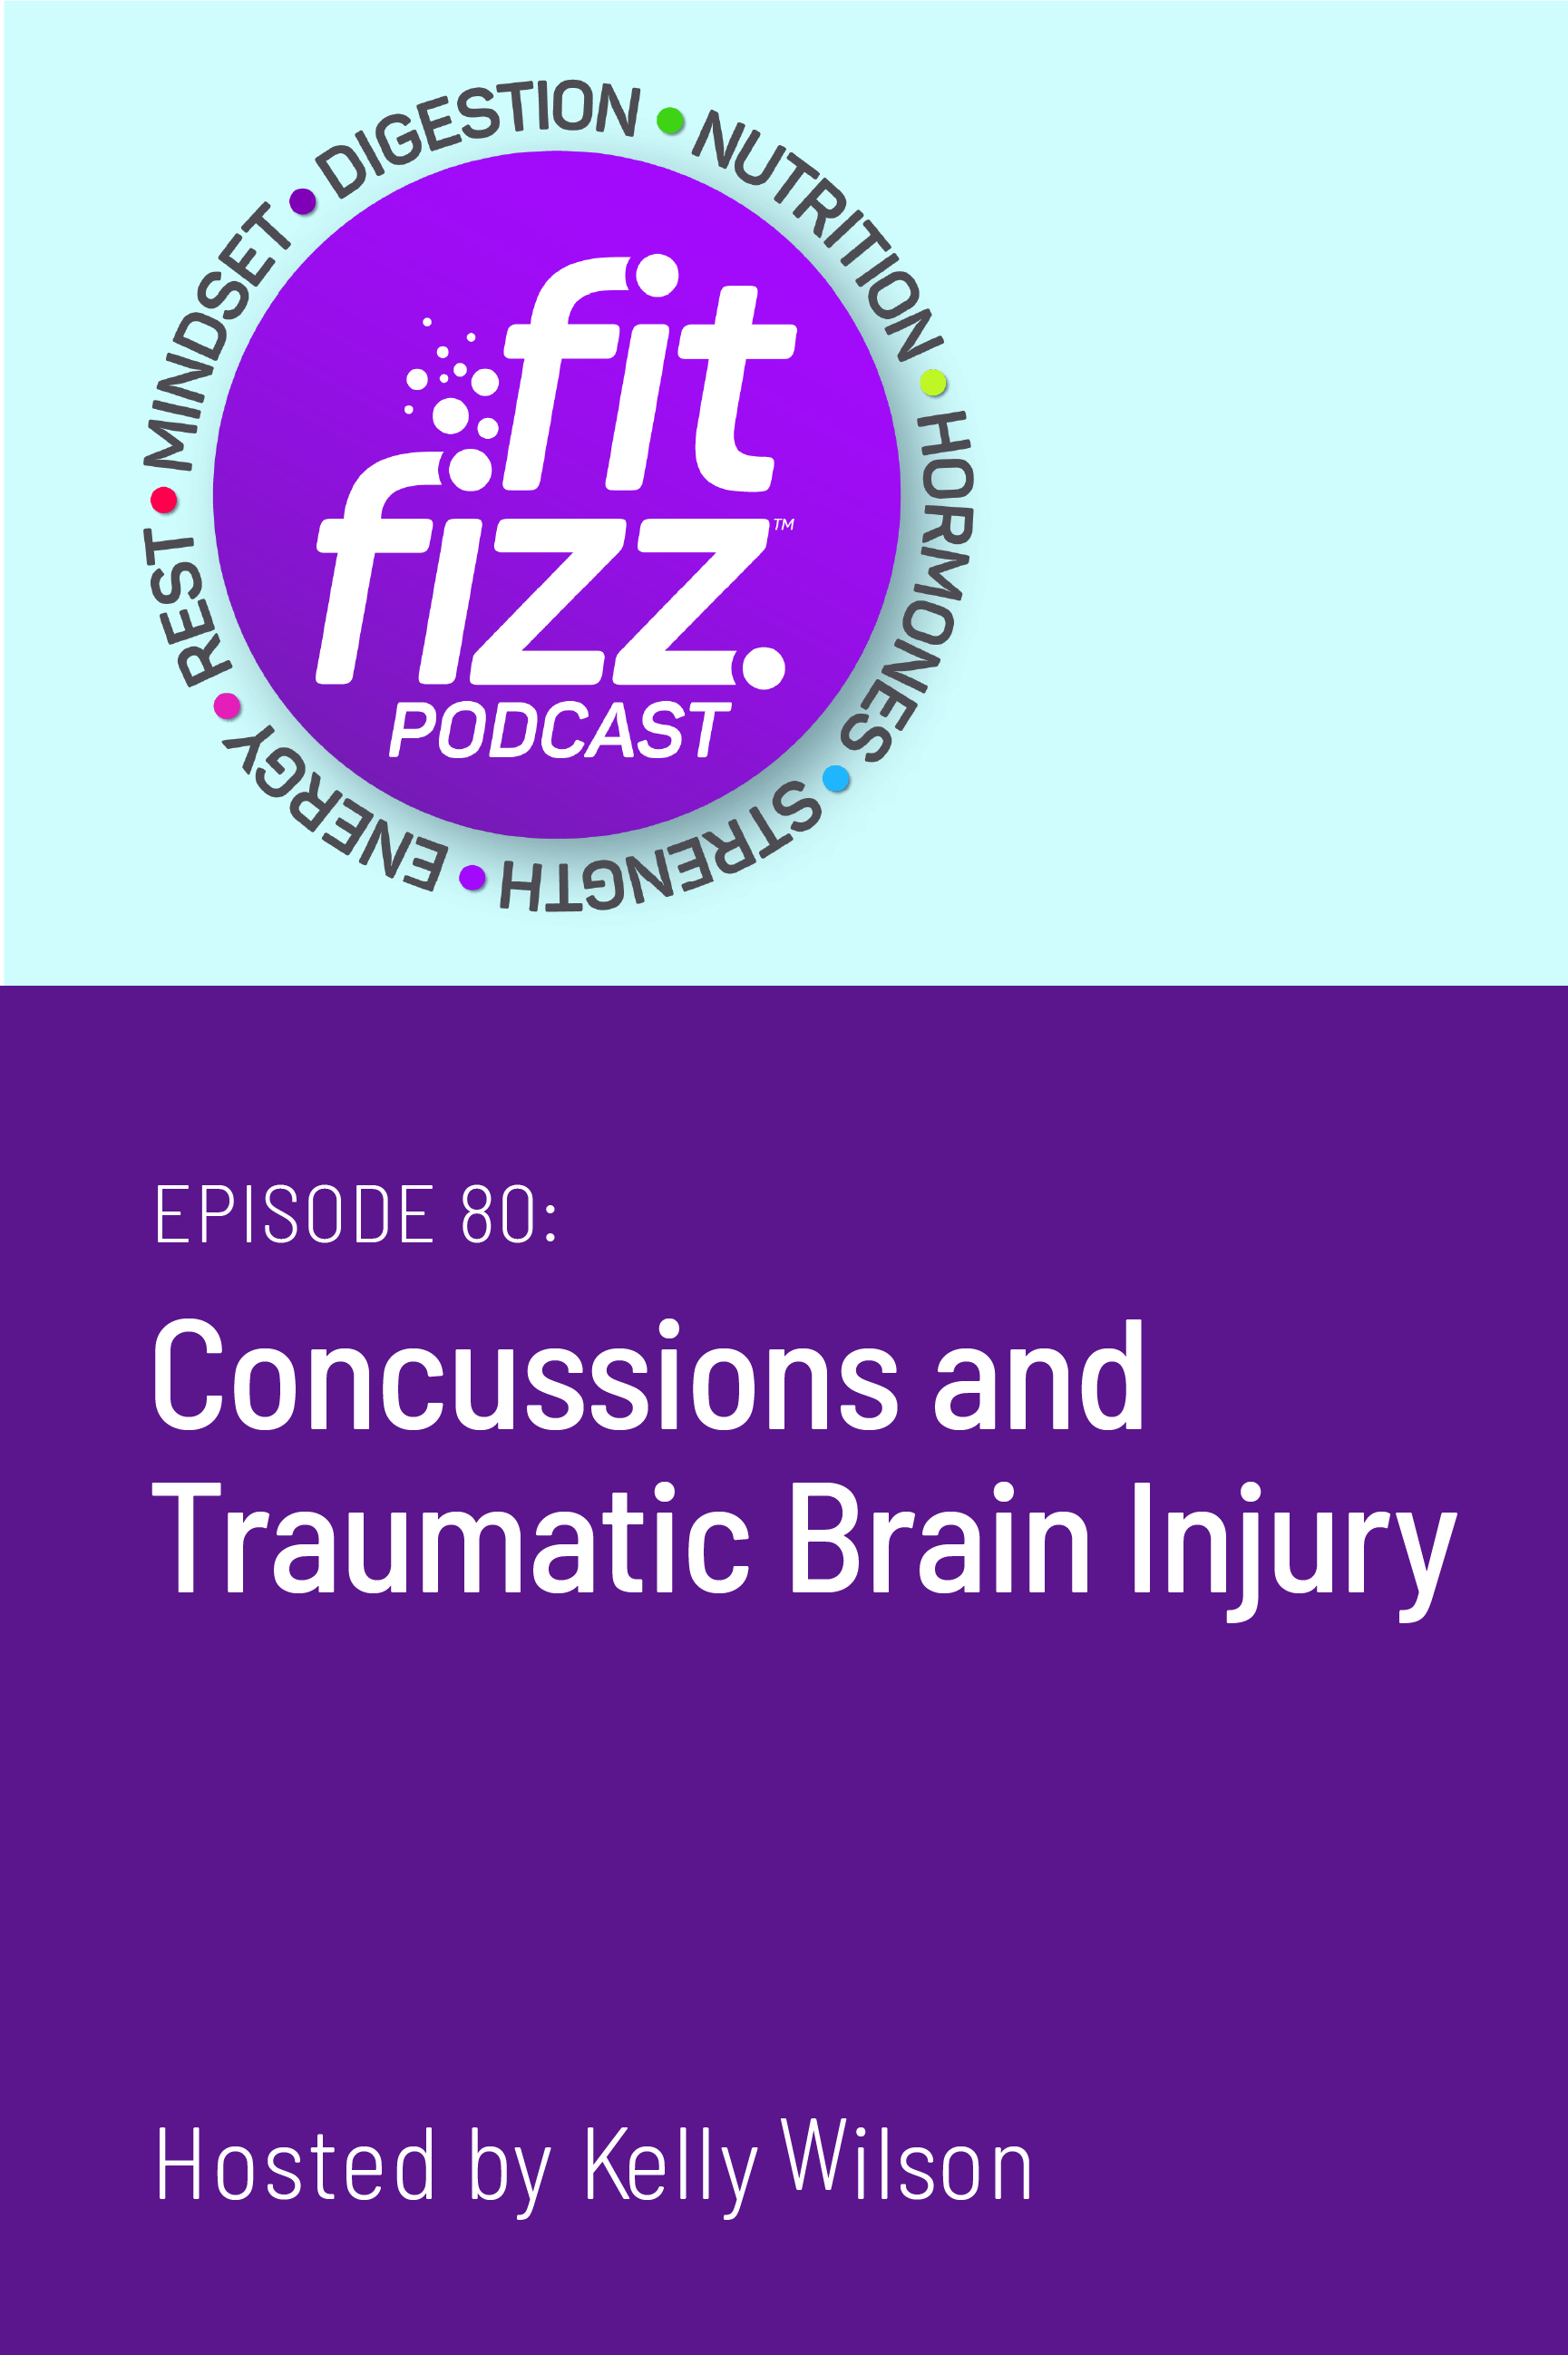 Ep. 80: Concussions and Traumatic Brain Injury